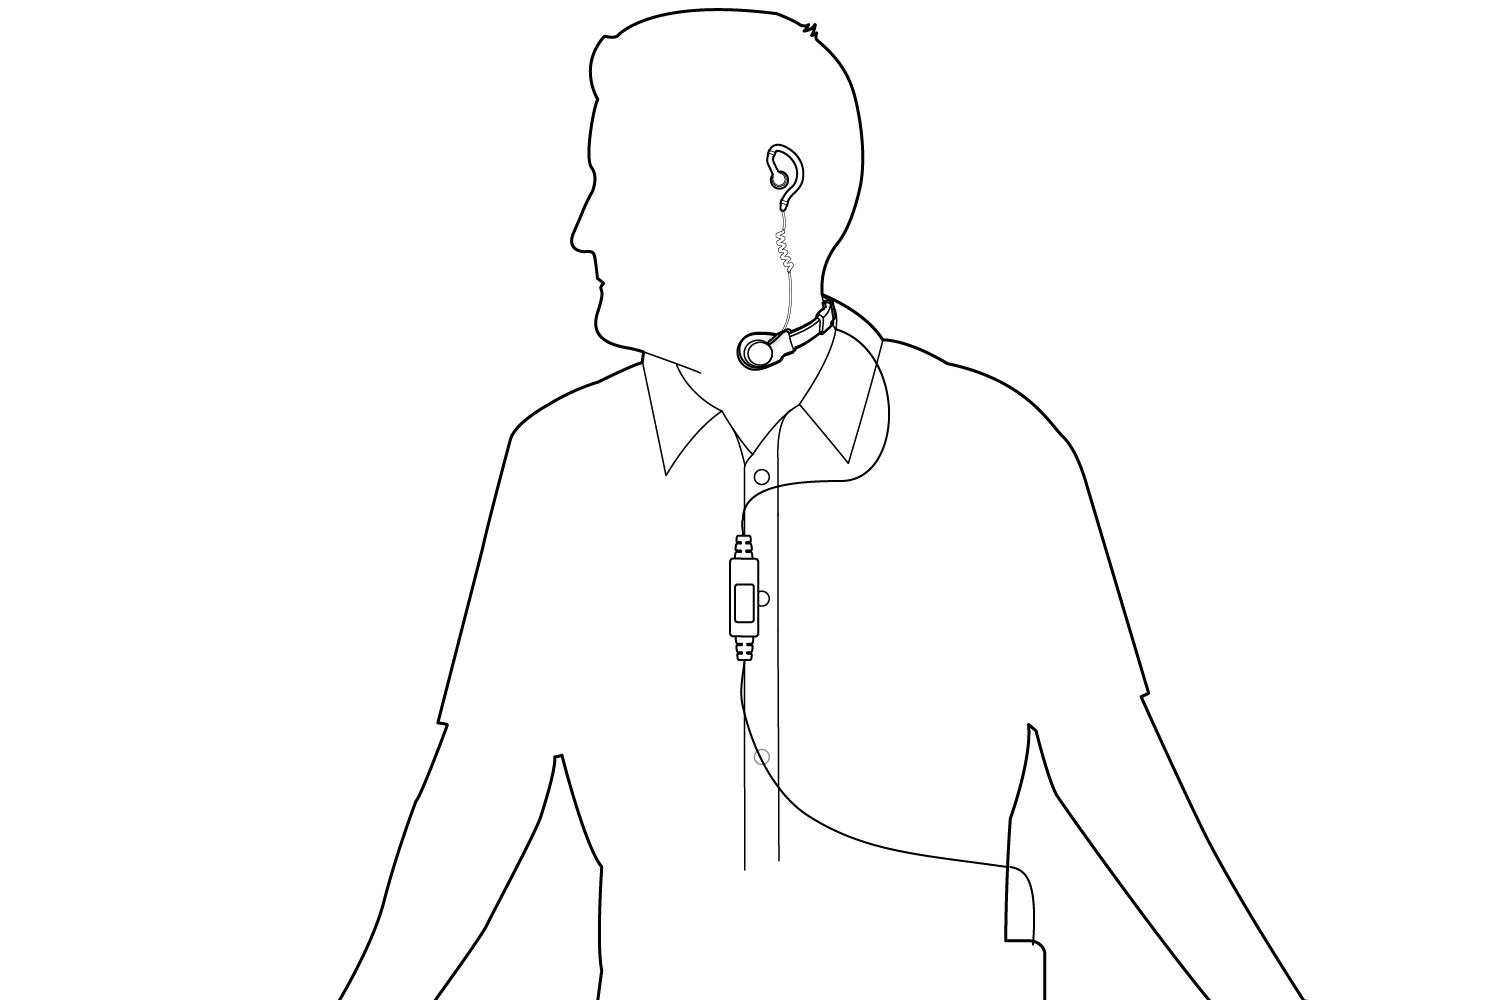 Wearing With Shirt Diagram